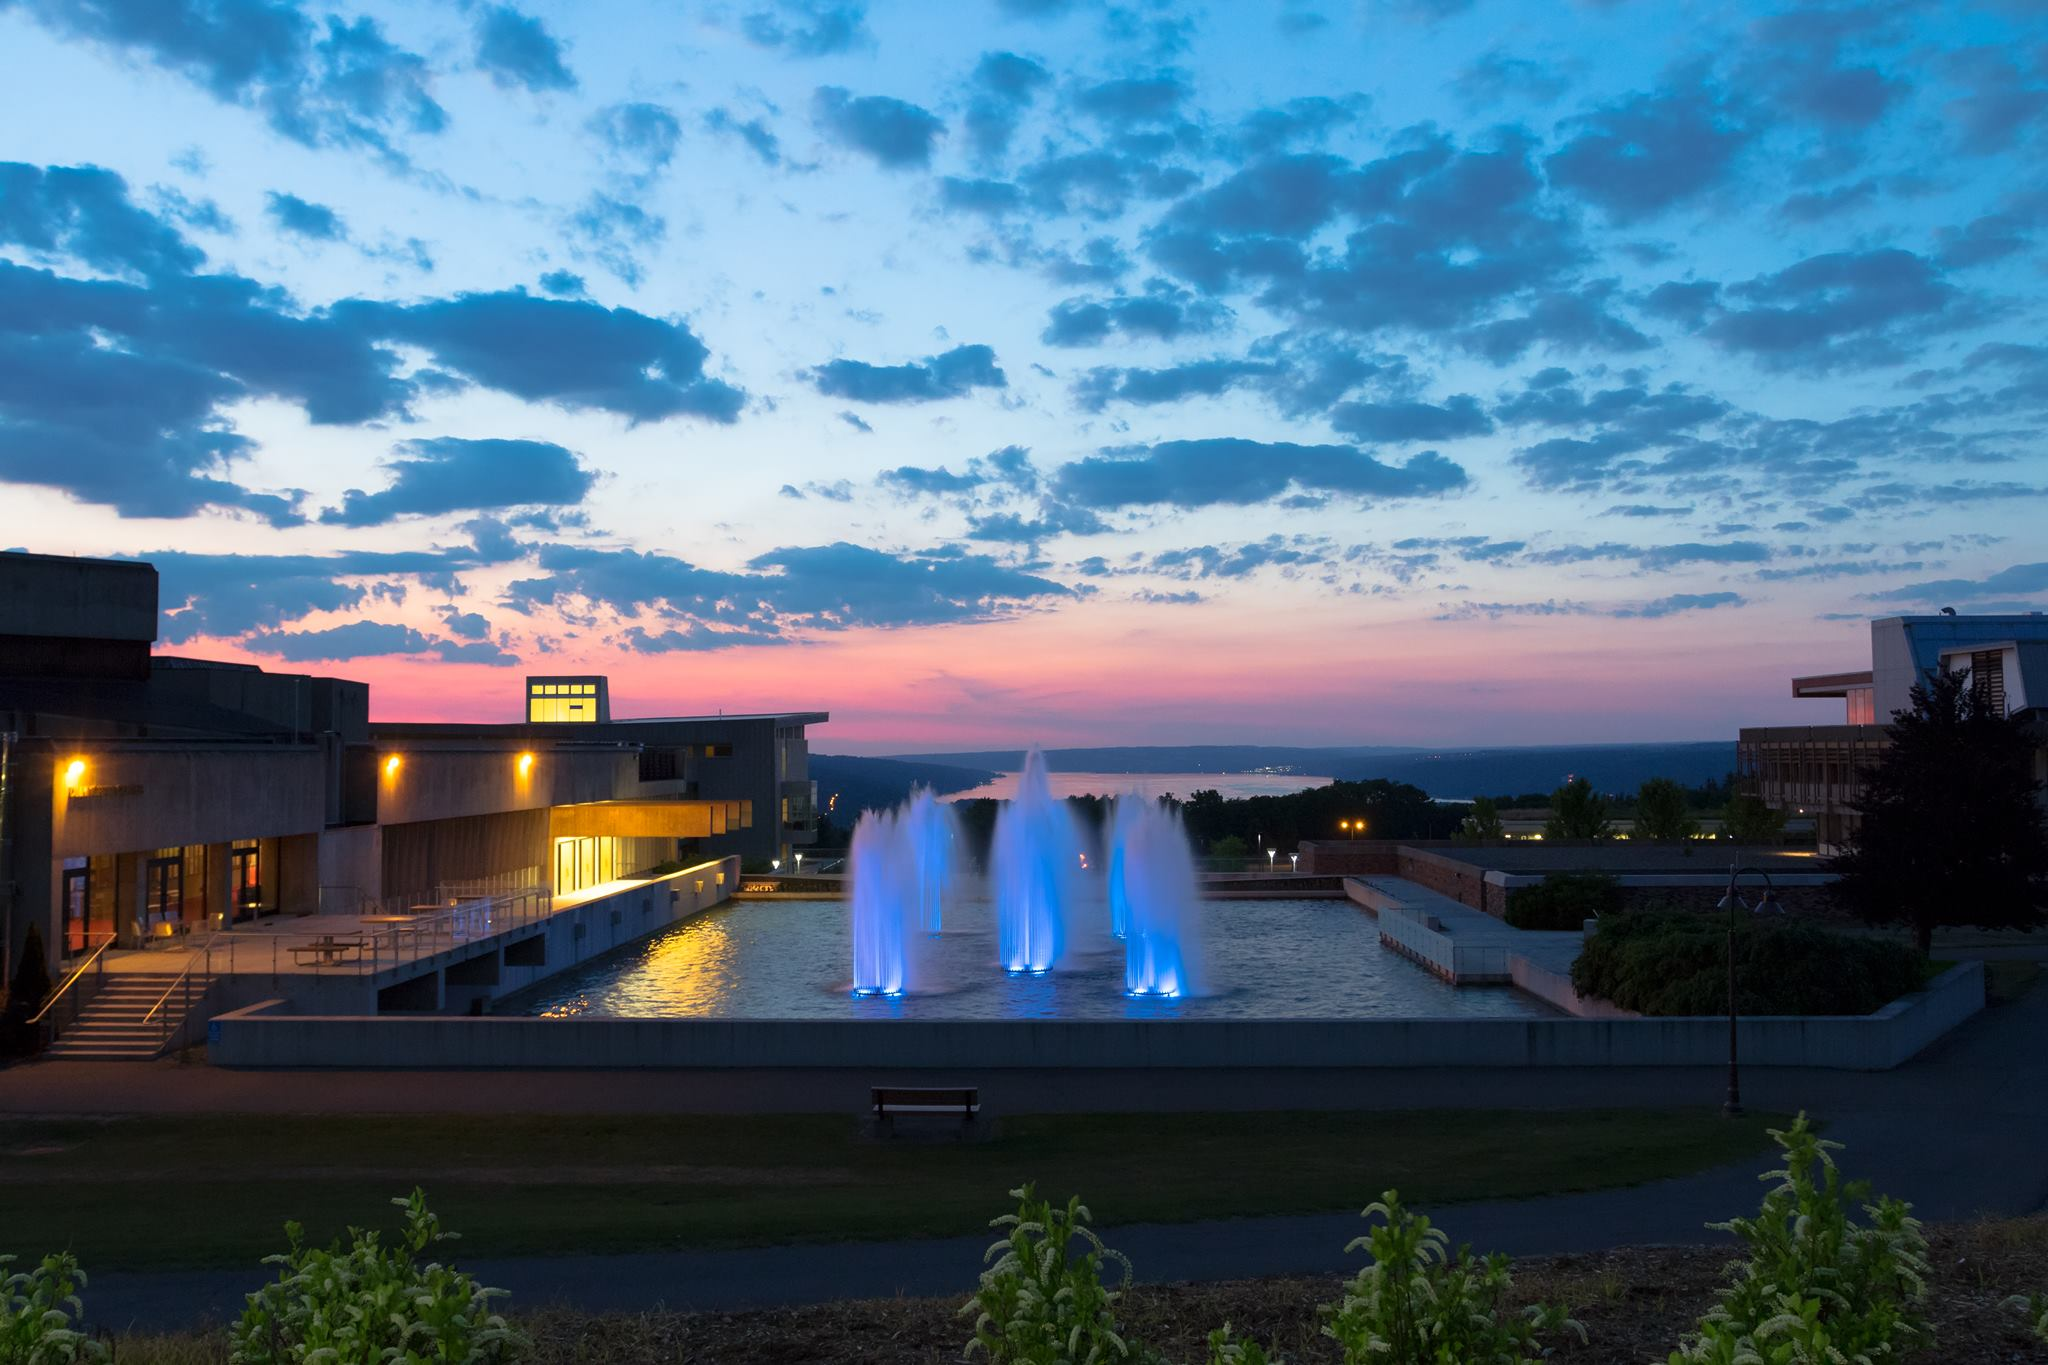 Ithaca college fountains and sunset